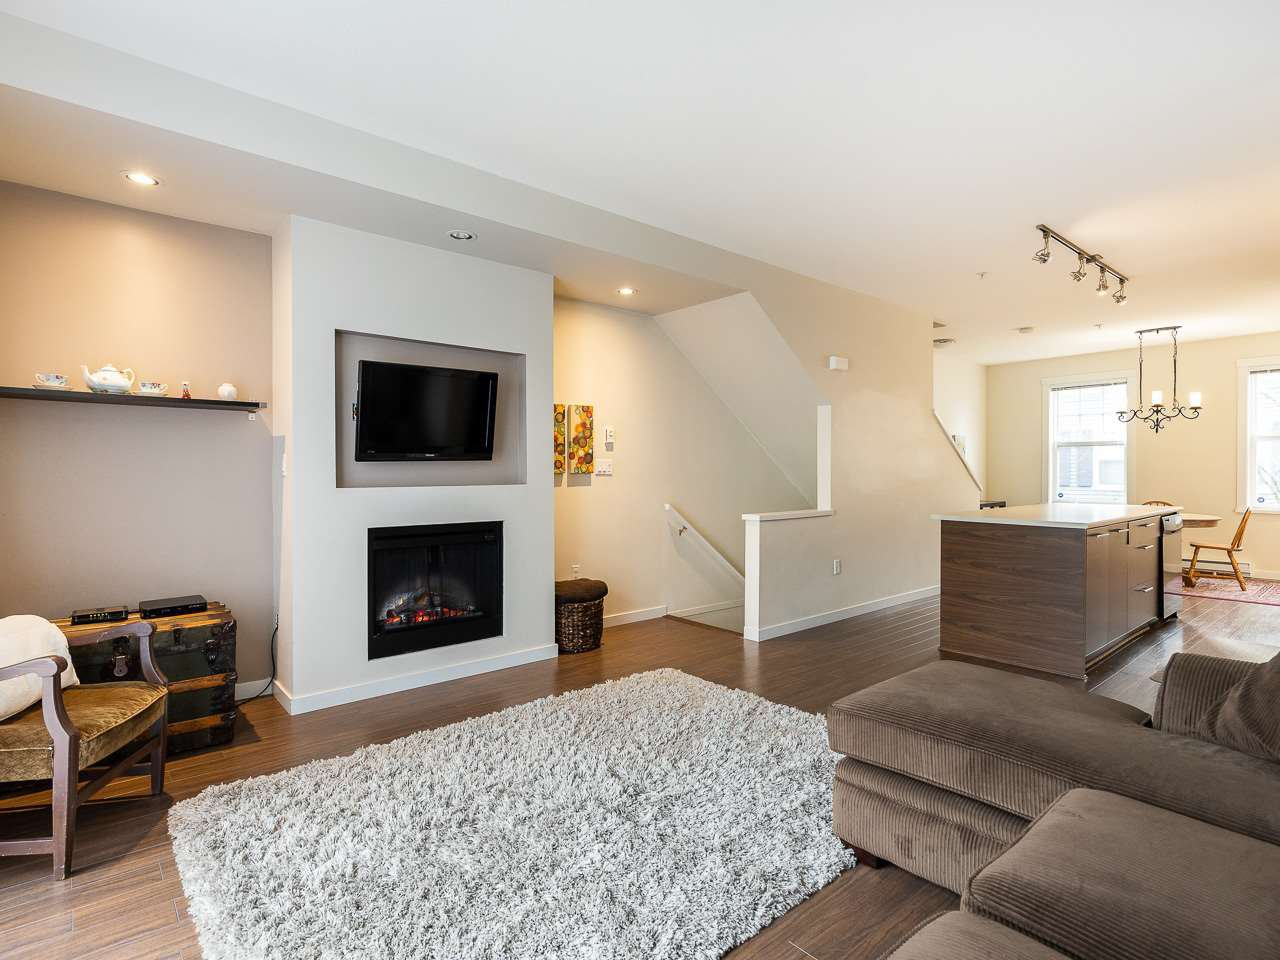 """Main Photo: 13 2495 DAVIES Avenue in Port Coquitlam: Central Pt Coquitlam Townhouse for sale in """"Arbour by Mosaic"""" : MLS®# R2434032"""